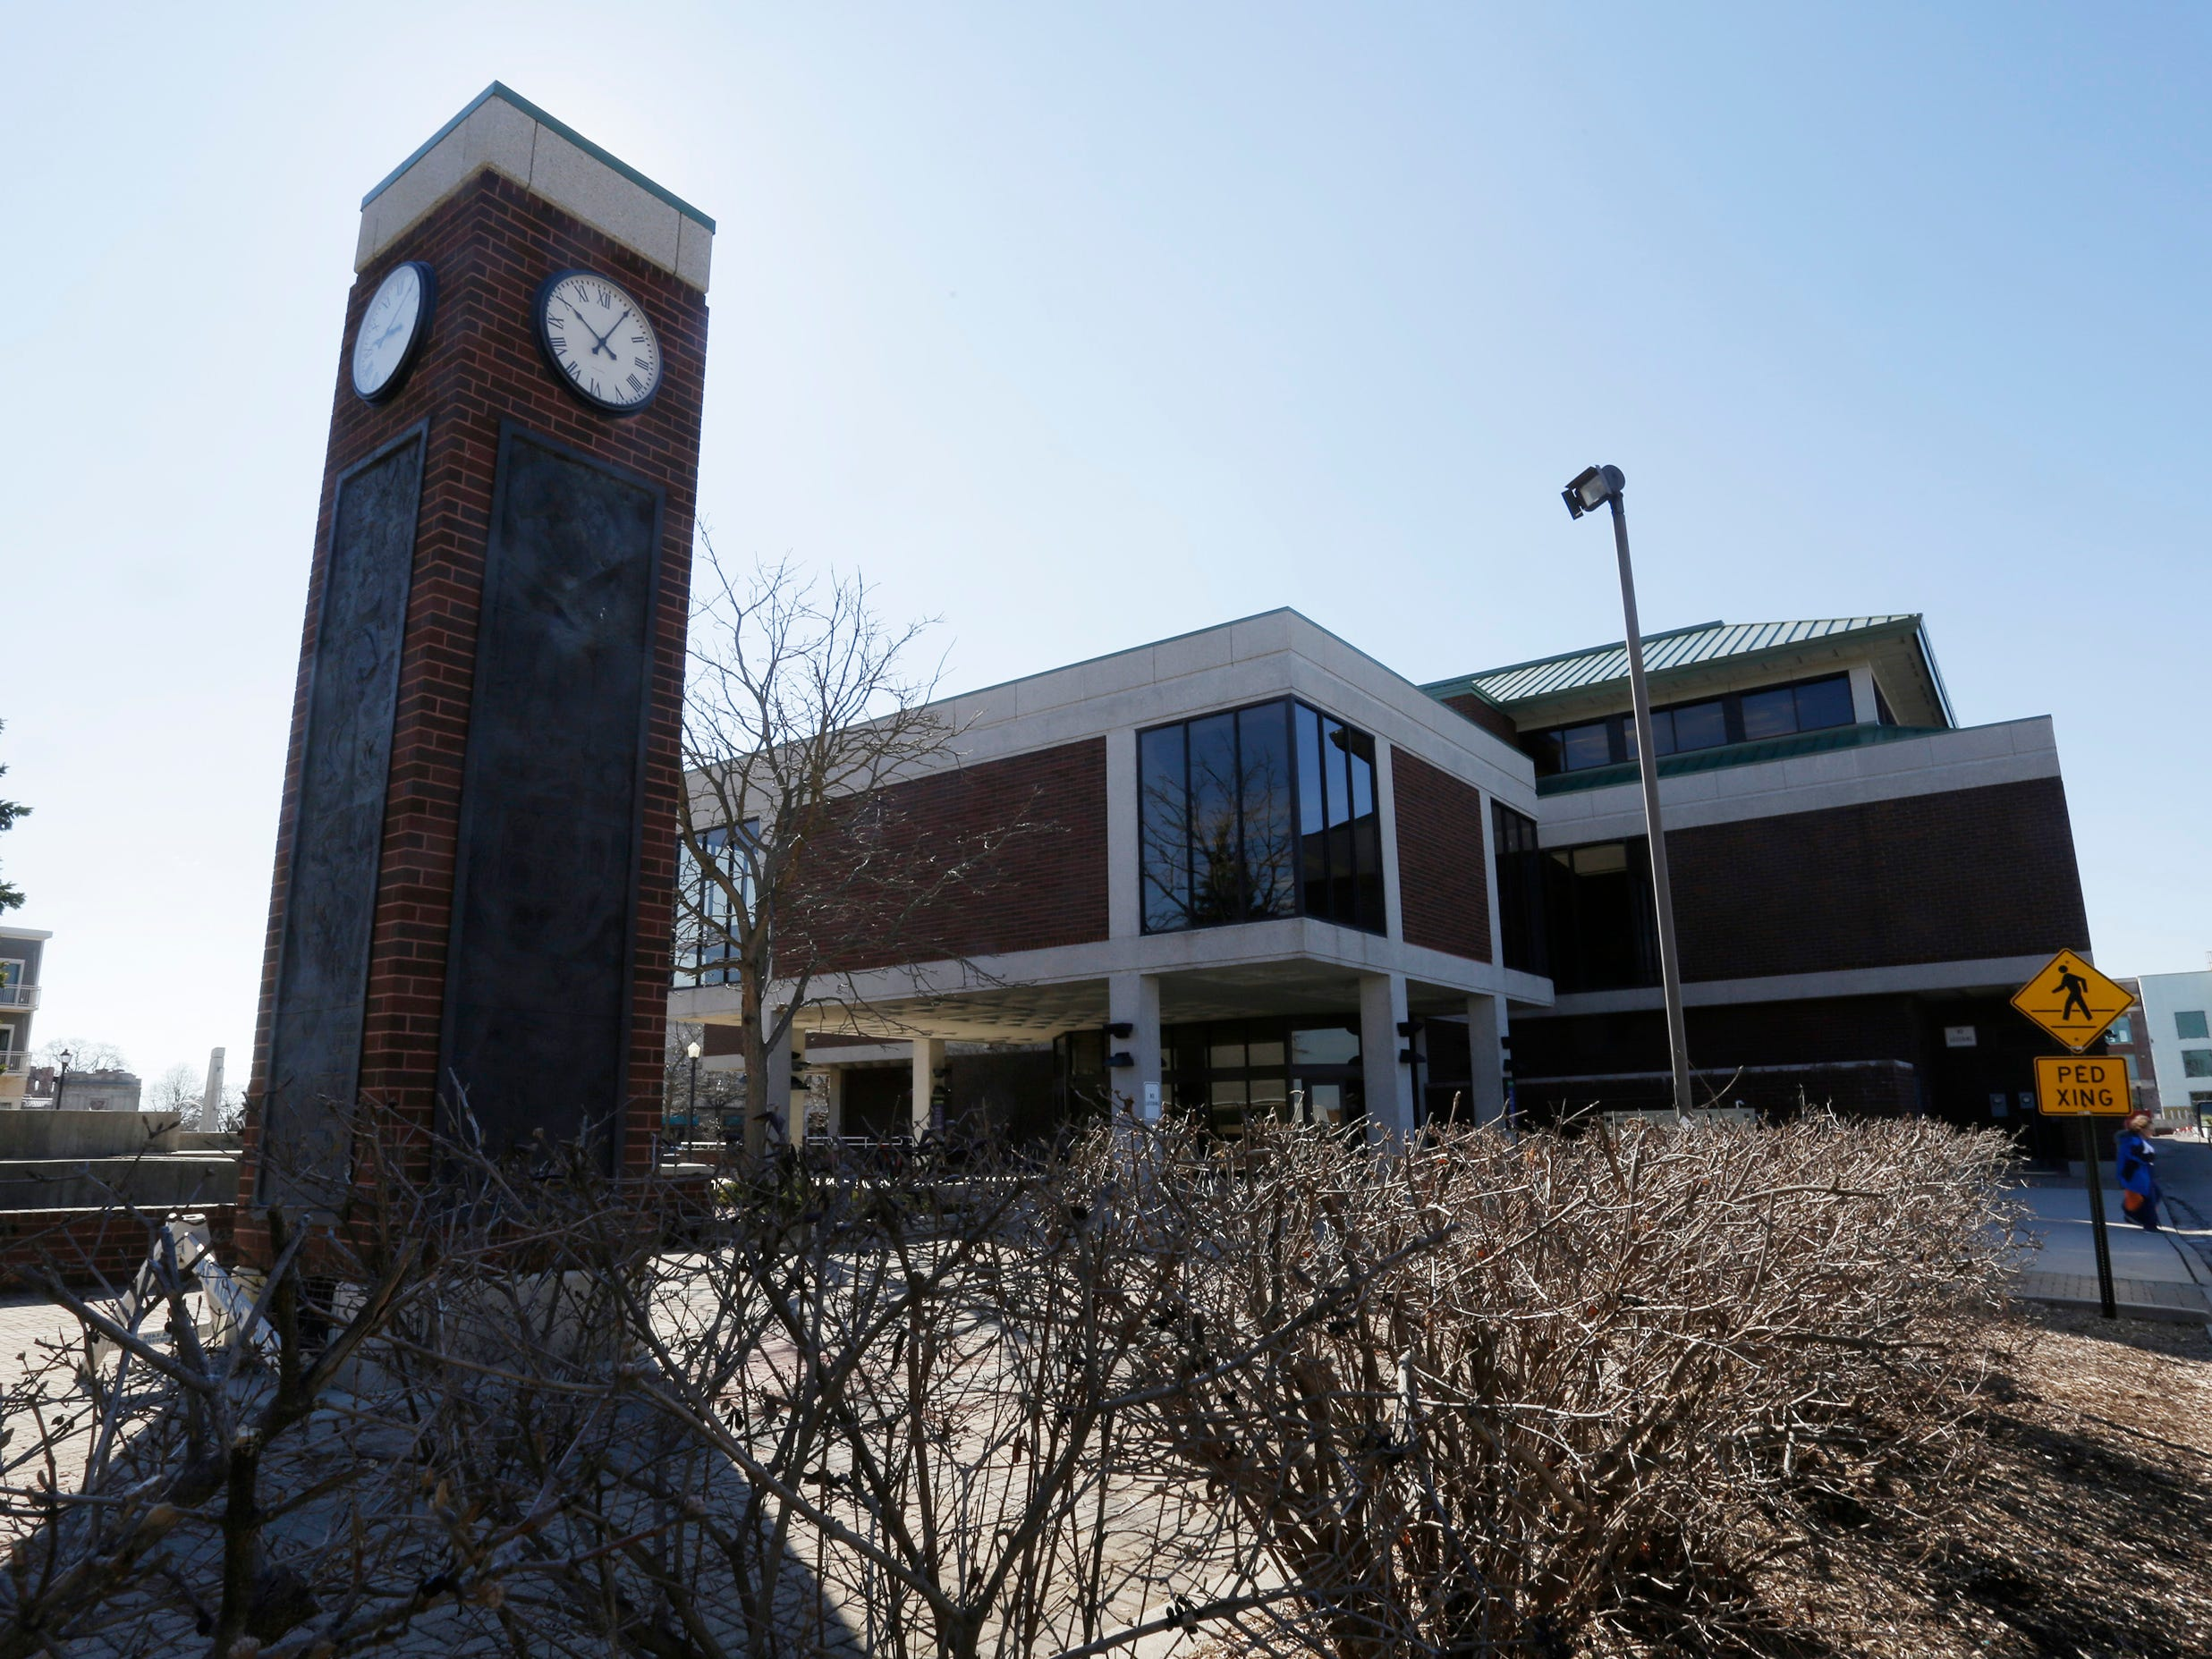 A view of the northwest side of Mead Public Library, Tuesday, April 9, 2019, in Sheboygan, Wis. In the foreground is the clock tower.